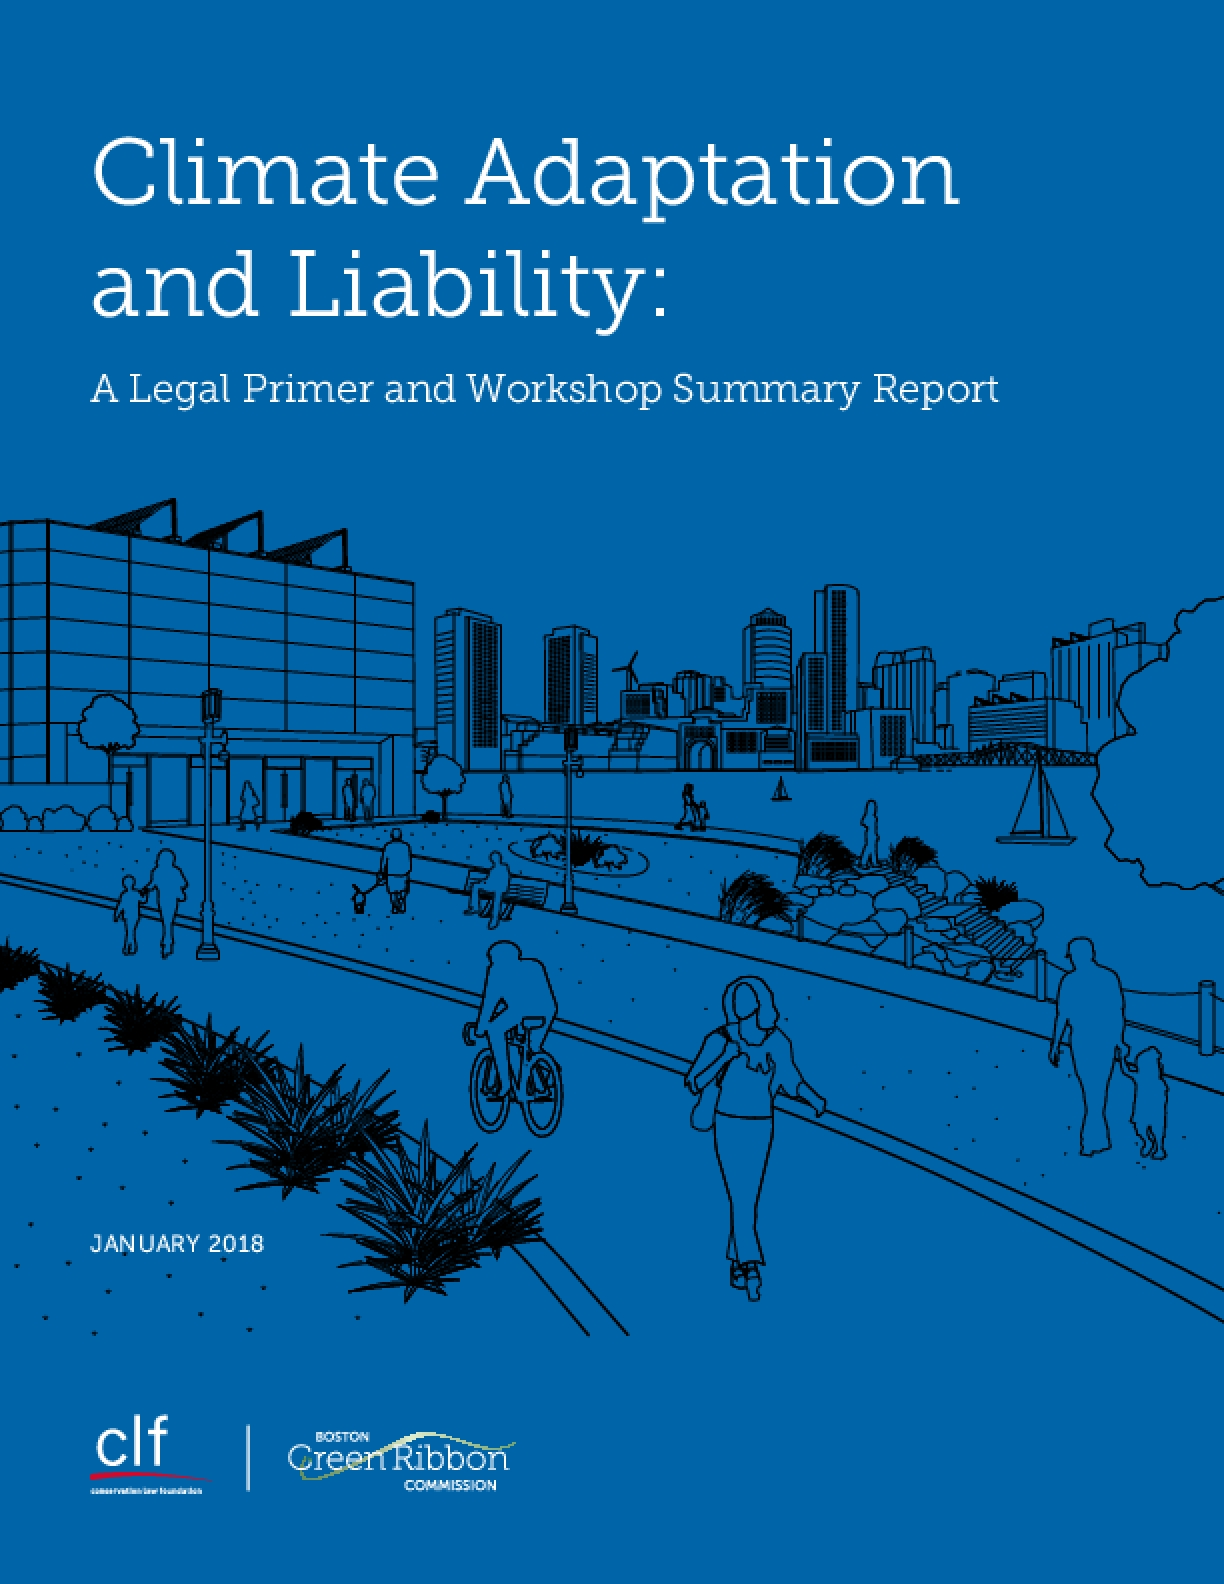 Climate Adaptation and Liability: A Legal Primer and Workshop Summary Report